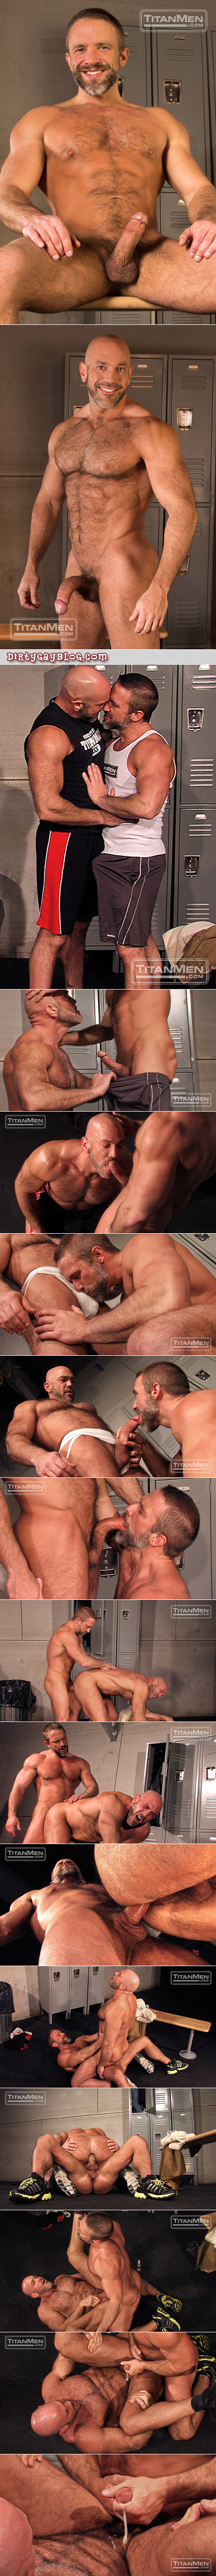 Hairy salt-and-pepper muscle Daddies having gay sex in the locker room at the gym.